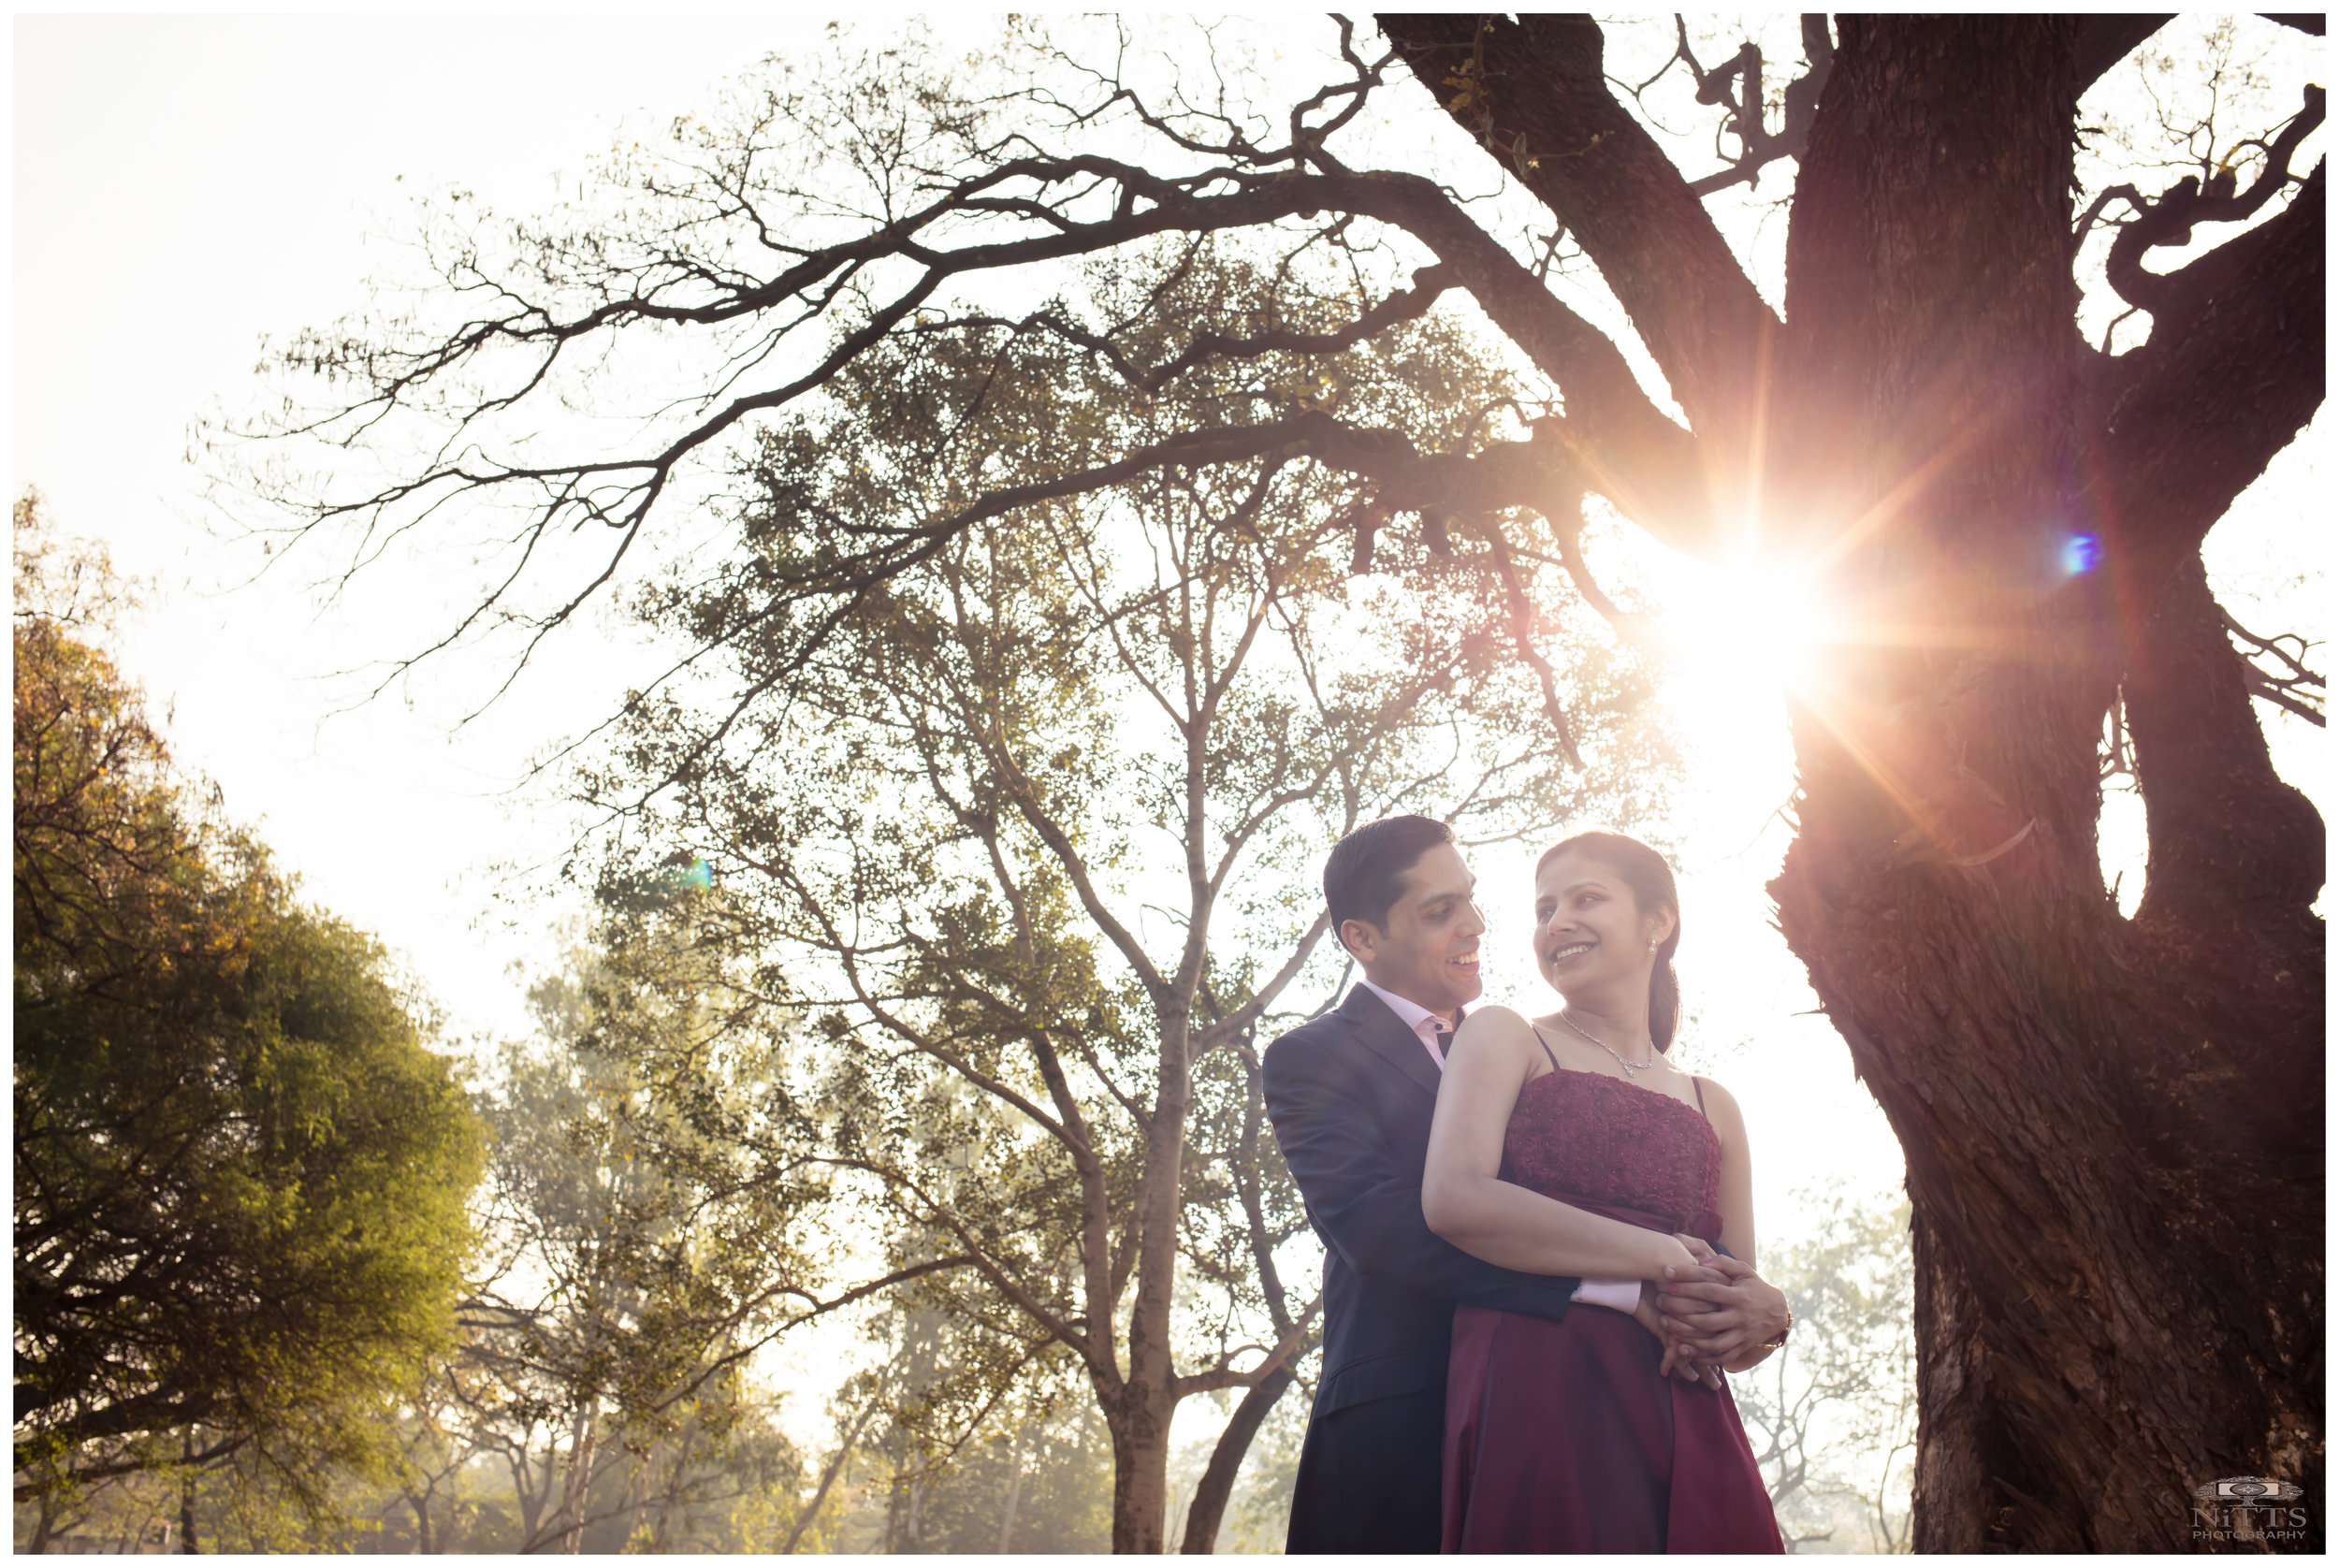 Back-lit Couple Portrait - Pre-wedding.JPG